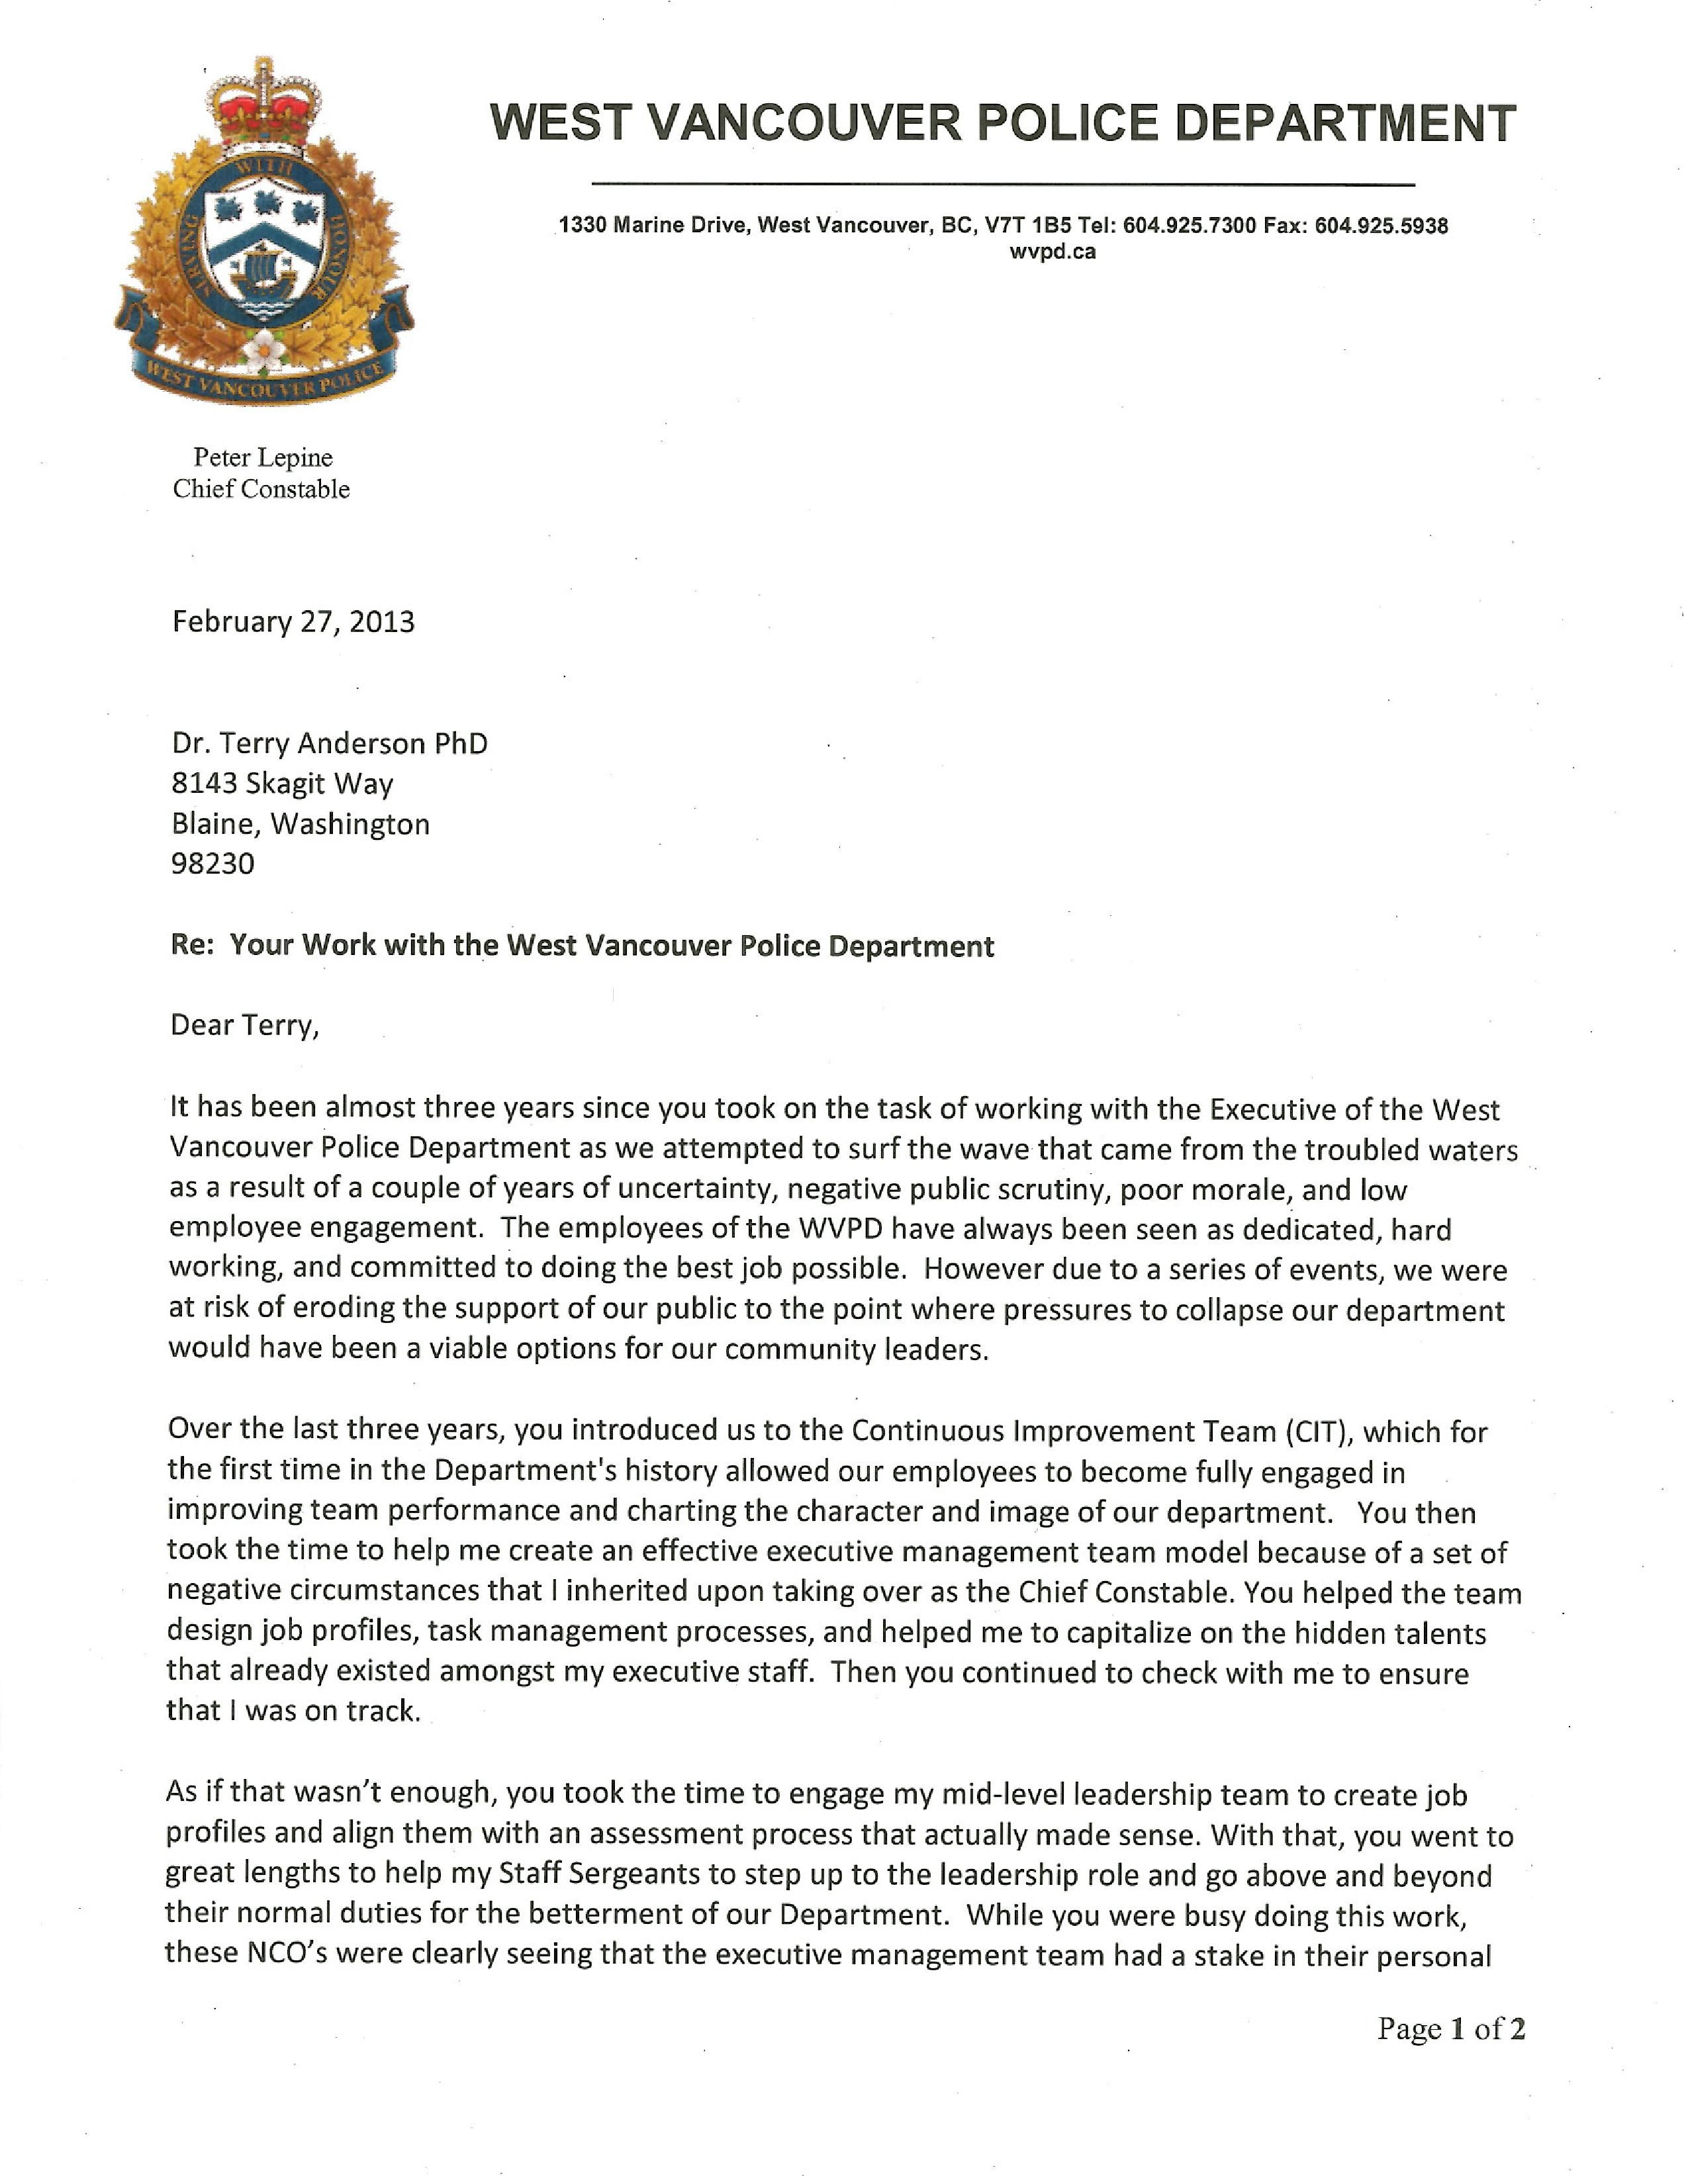 Letters Of Recommendation Consulting Coach Anderson